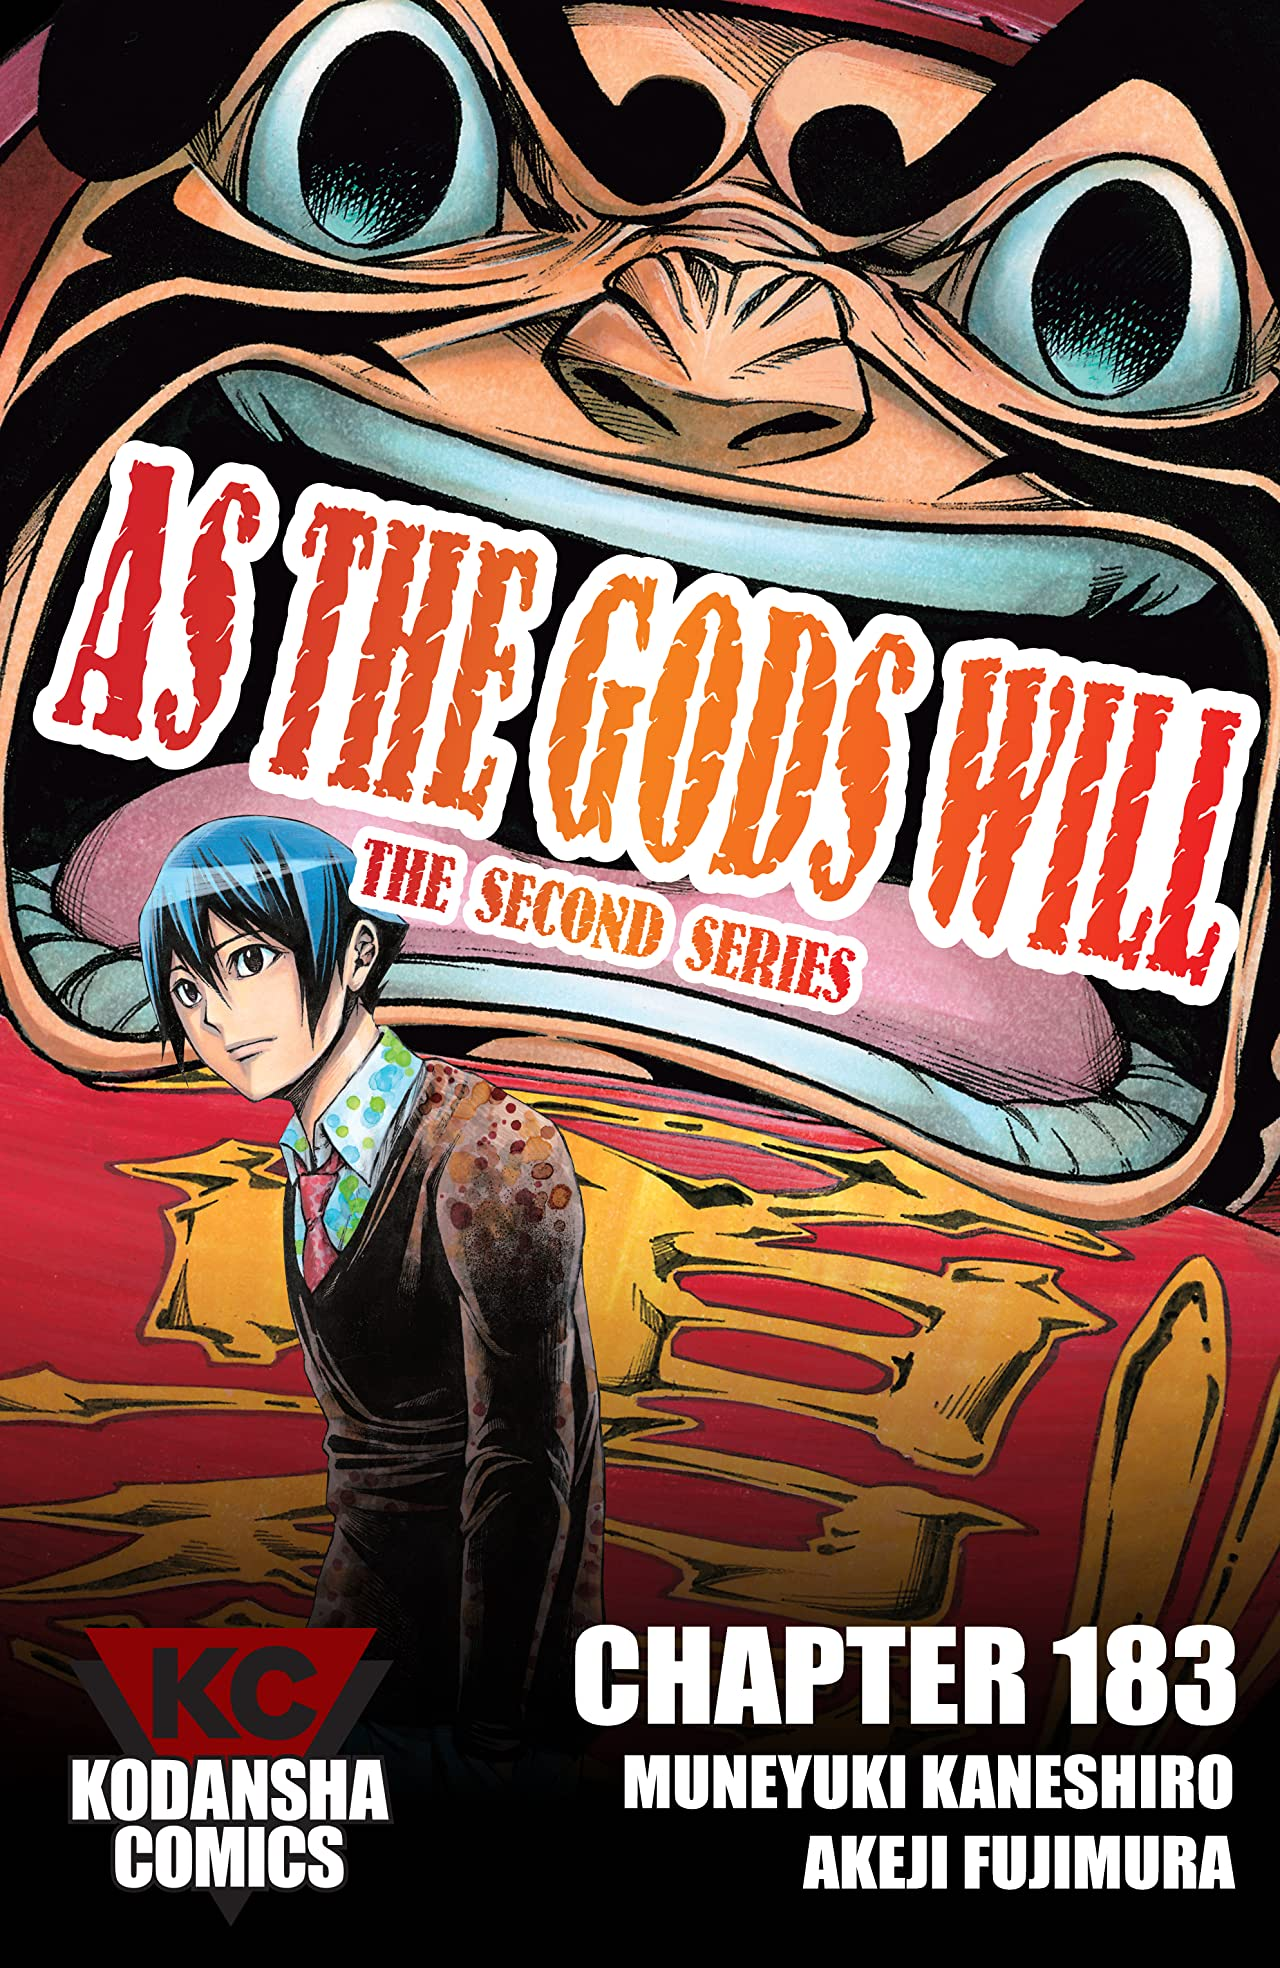 As The Gods Will: The Second Series #183